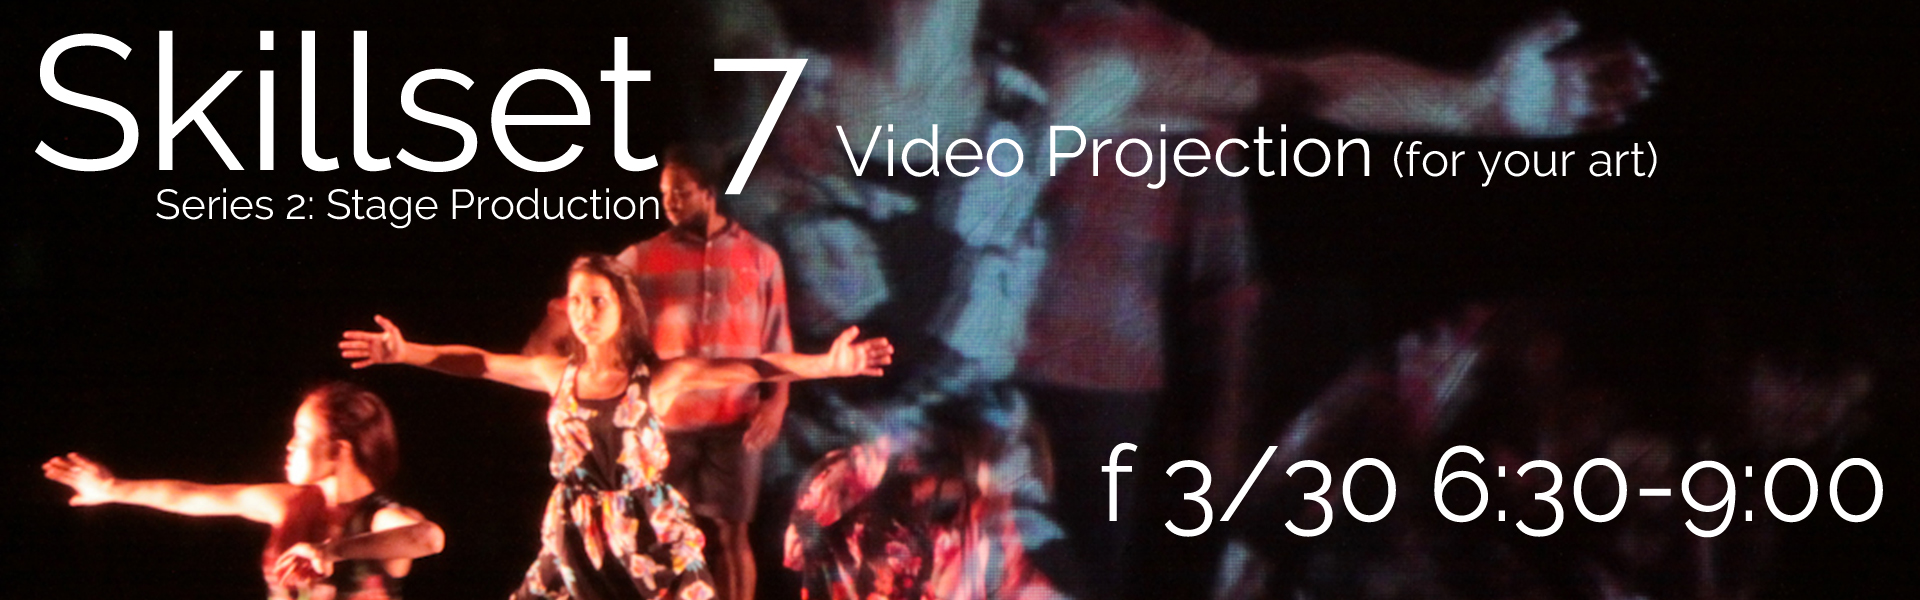 Skillset No. 7 Video Projection (for your art)